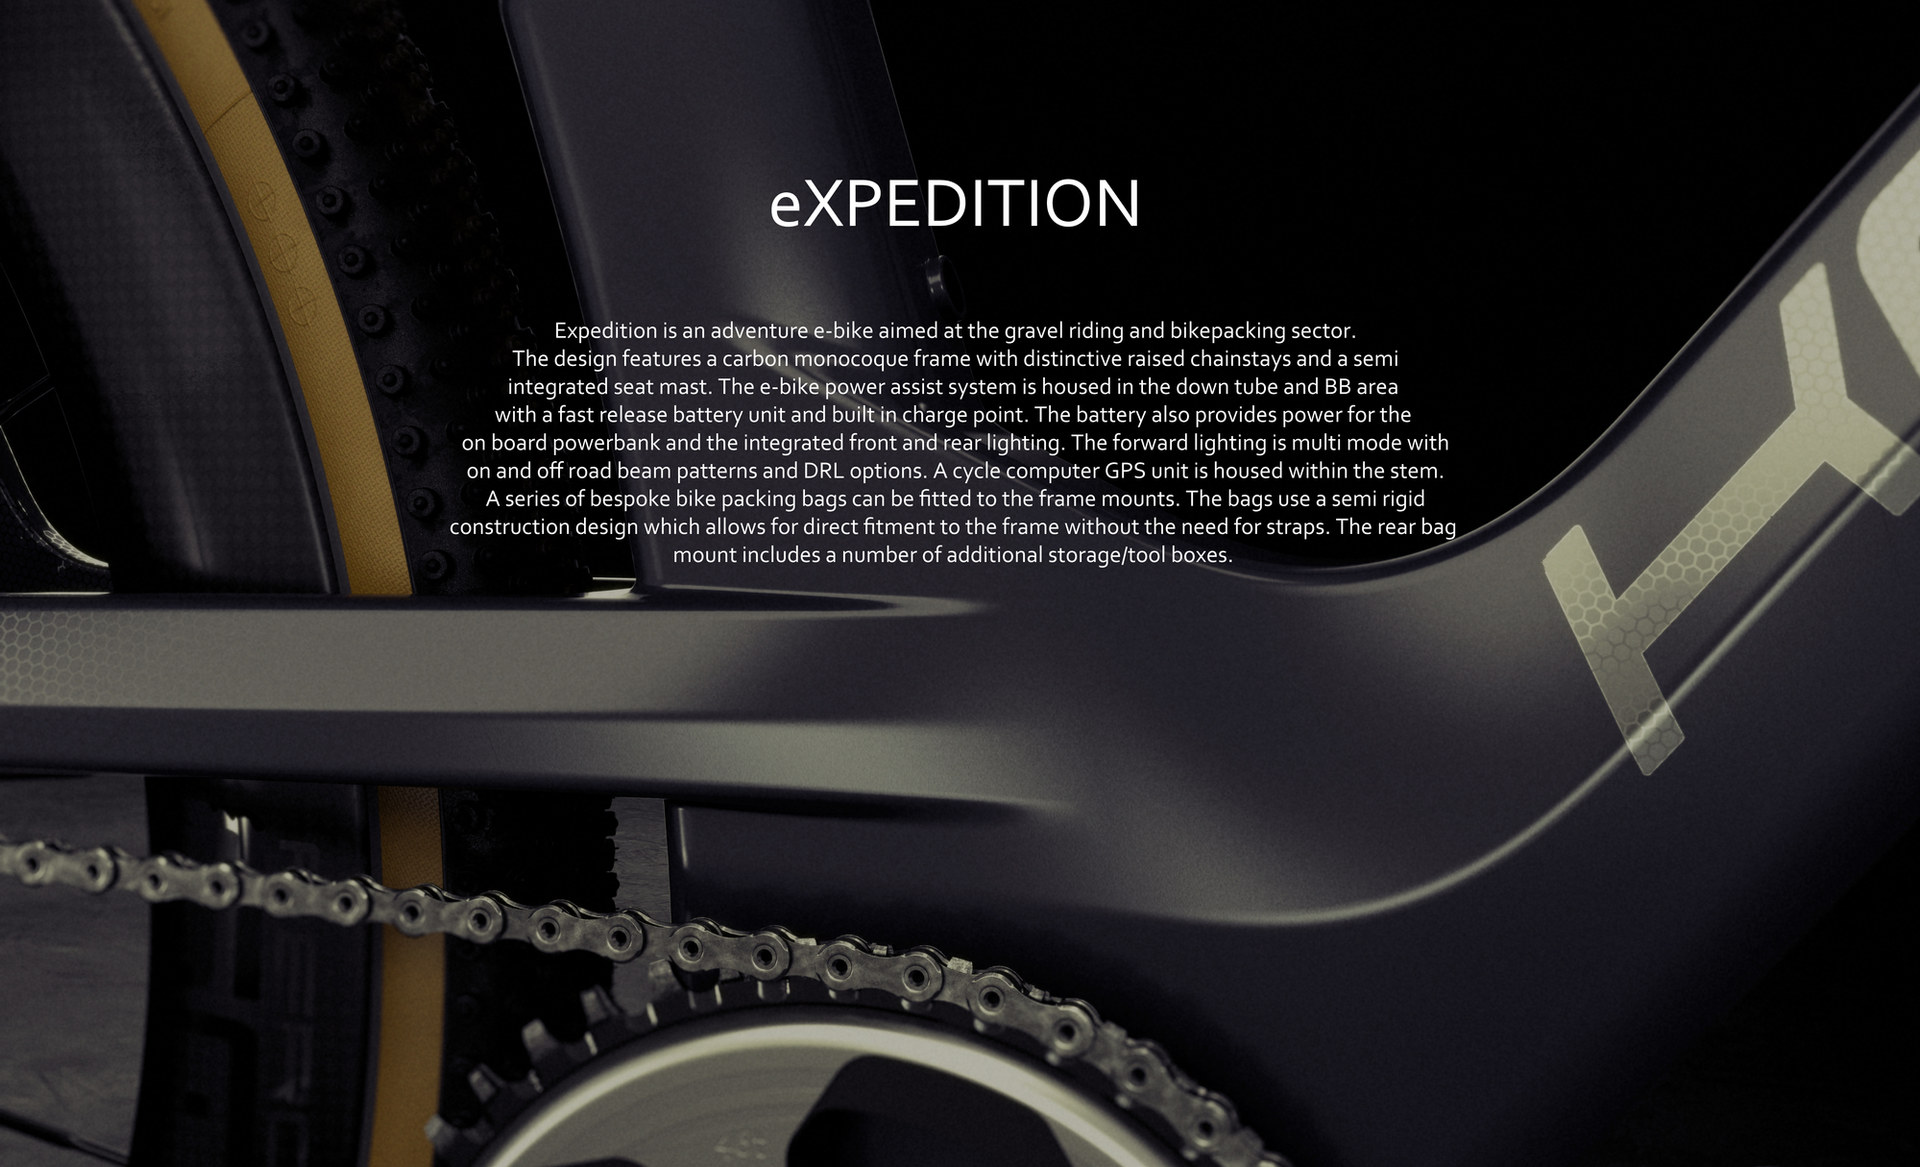 eXPEDITION gravel bike